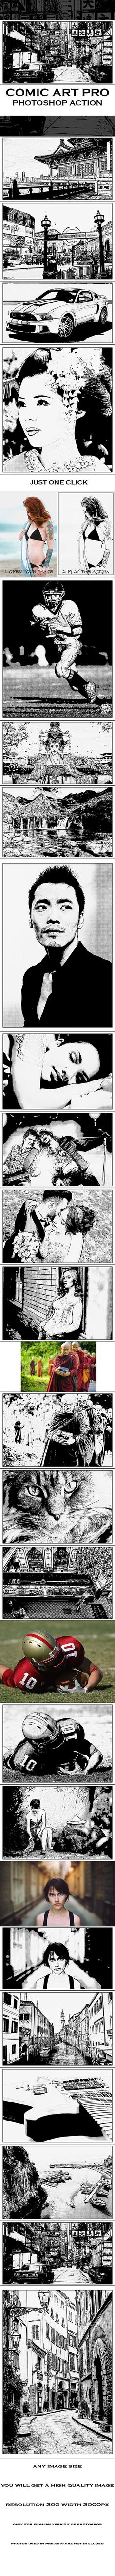 Comic Art Pro - Photo Effects Actions Download here: https://graphicriver.net/item/comic-art-pro/20128034?ref=classicdesignp